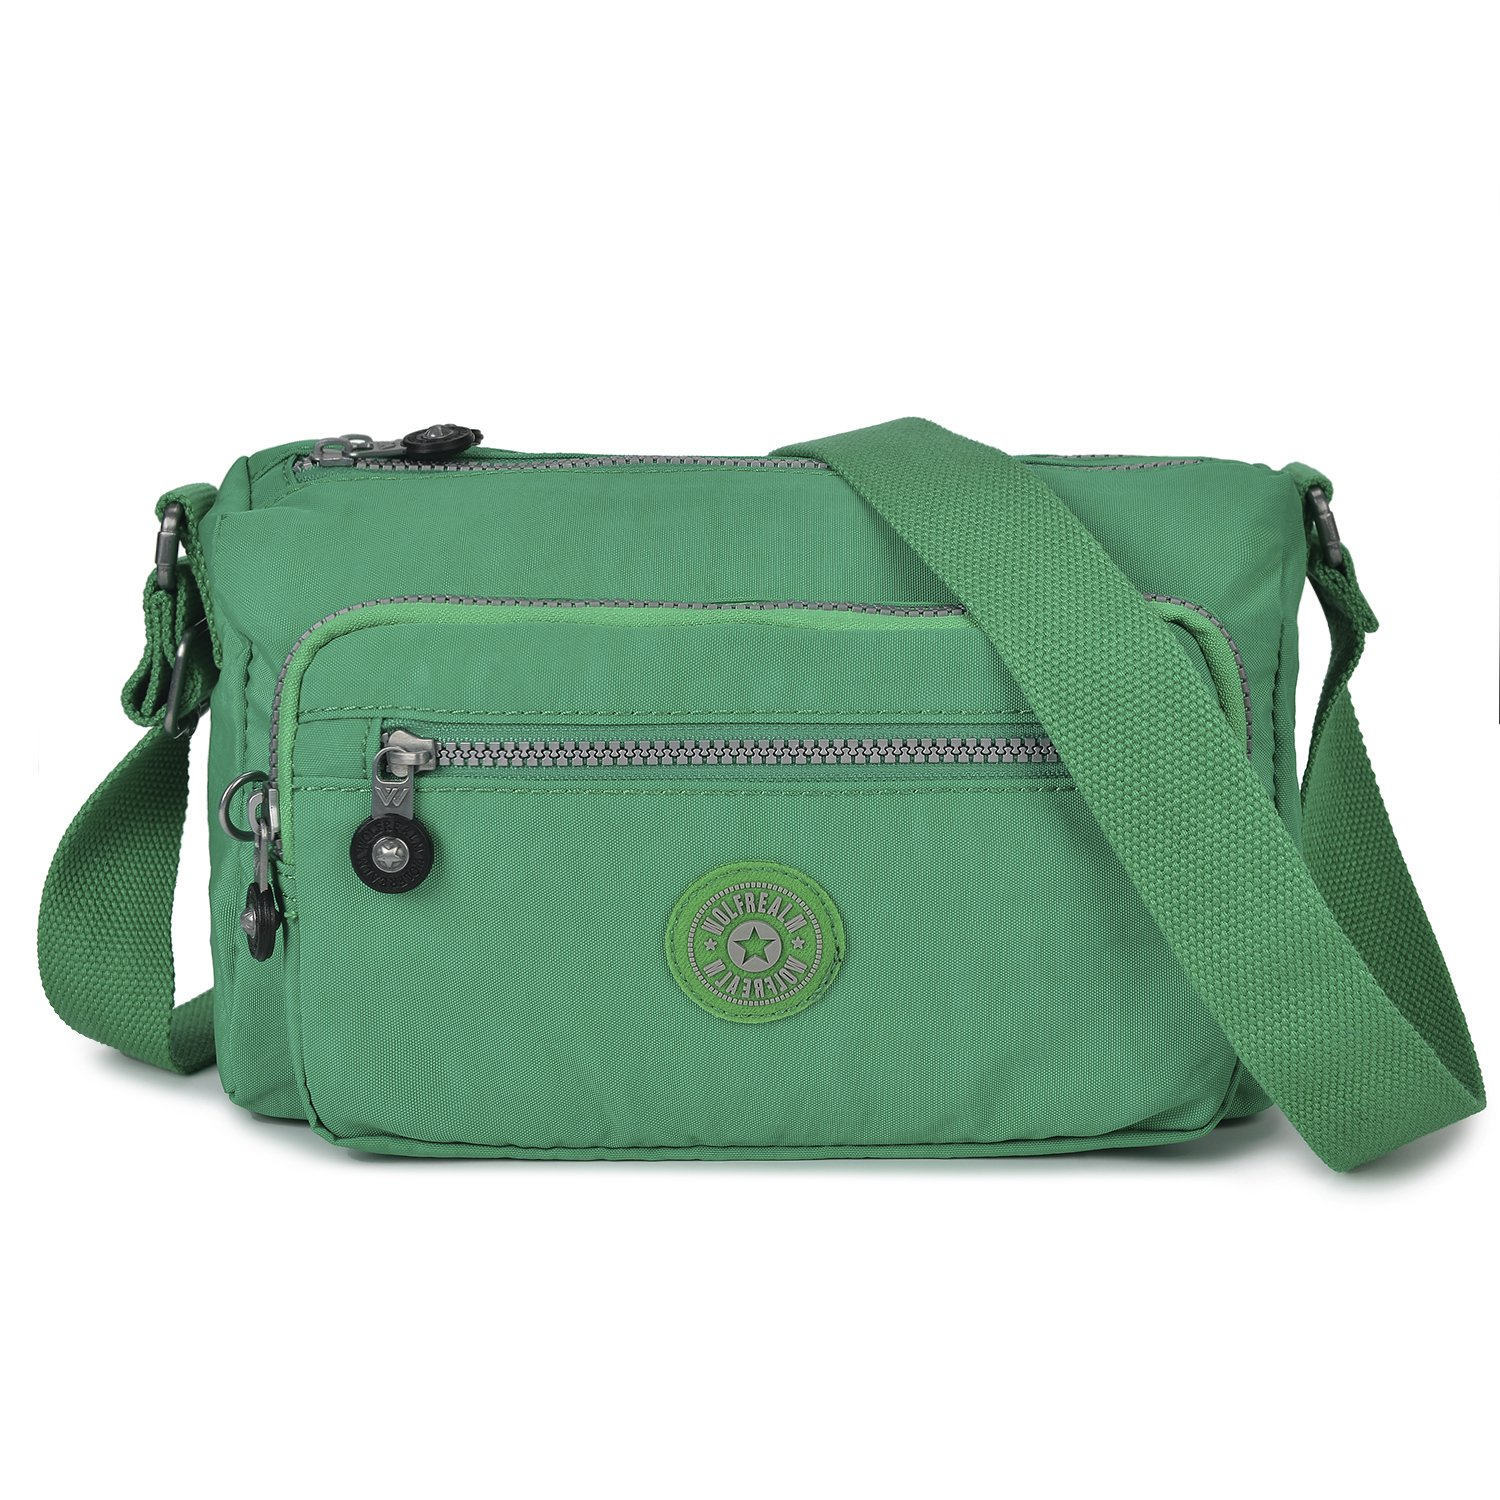 Wolfrealm Crossbody Purses For Women Small Fashion Shoulder Bags (Green)